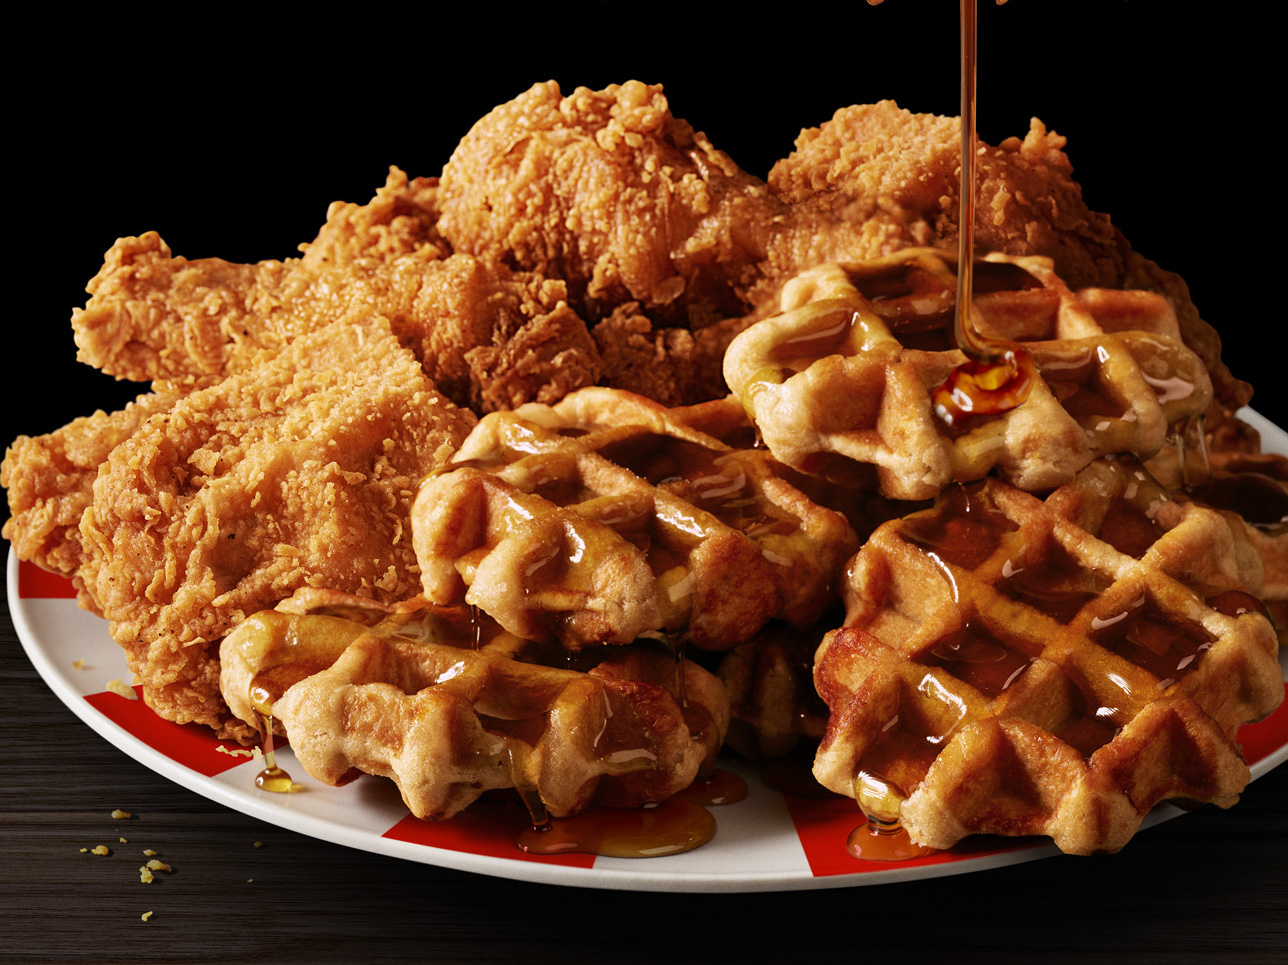 KFC Finally Pairs Its Chicken With Waffles